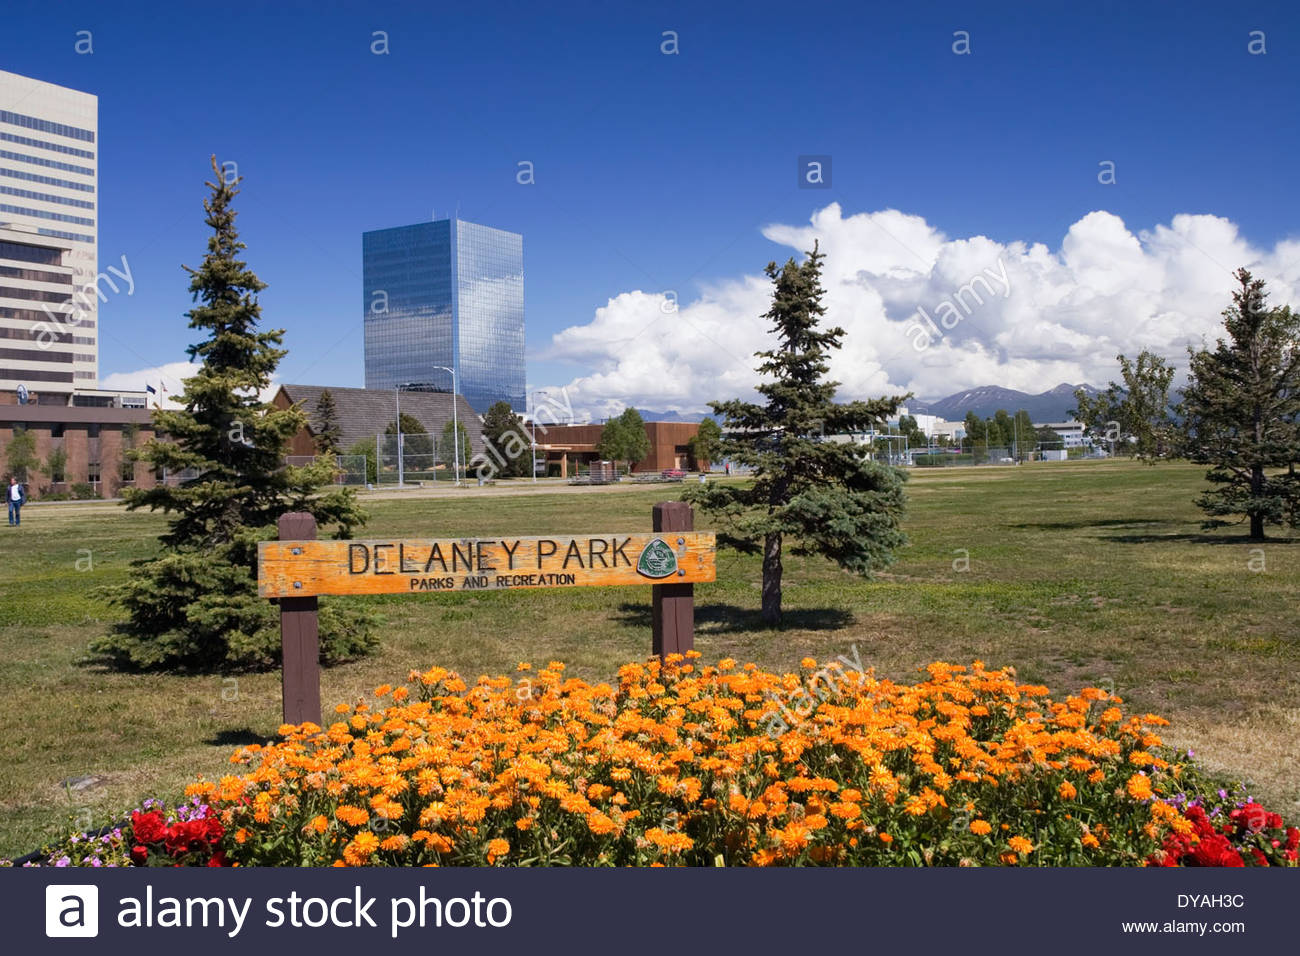 Historic City Hall Anchorage, View Of Downtown Anchorage @ Delaney Park Sc Ak Summer Stock Photo ...